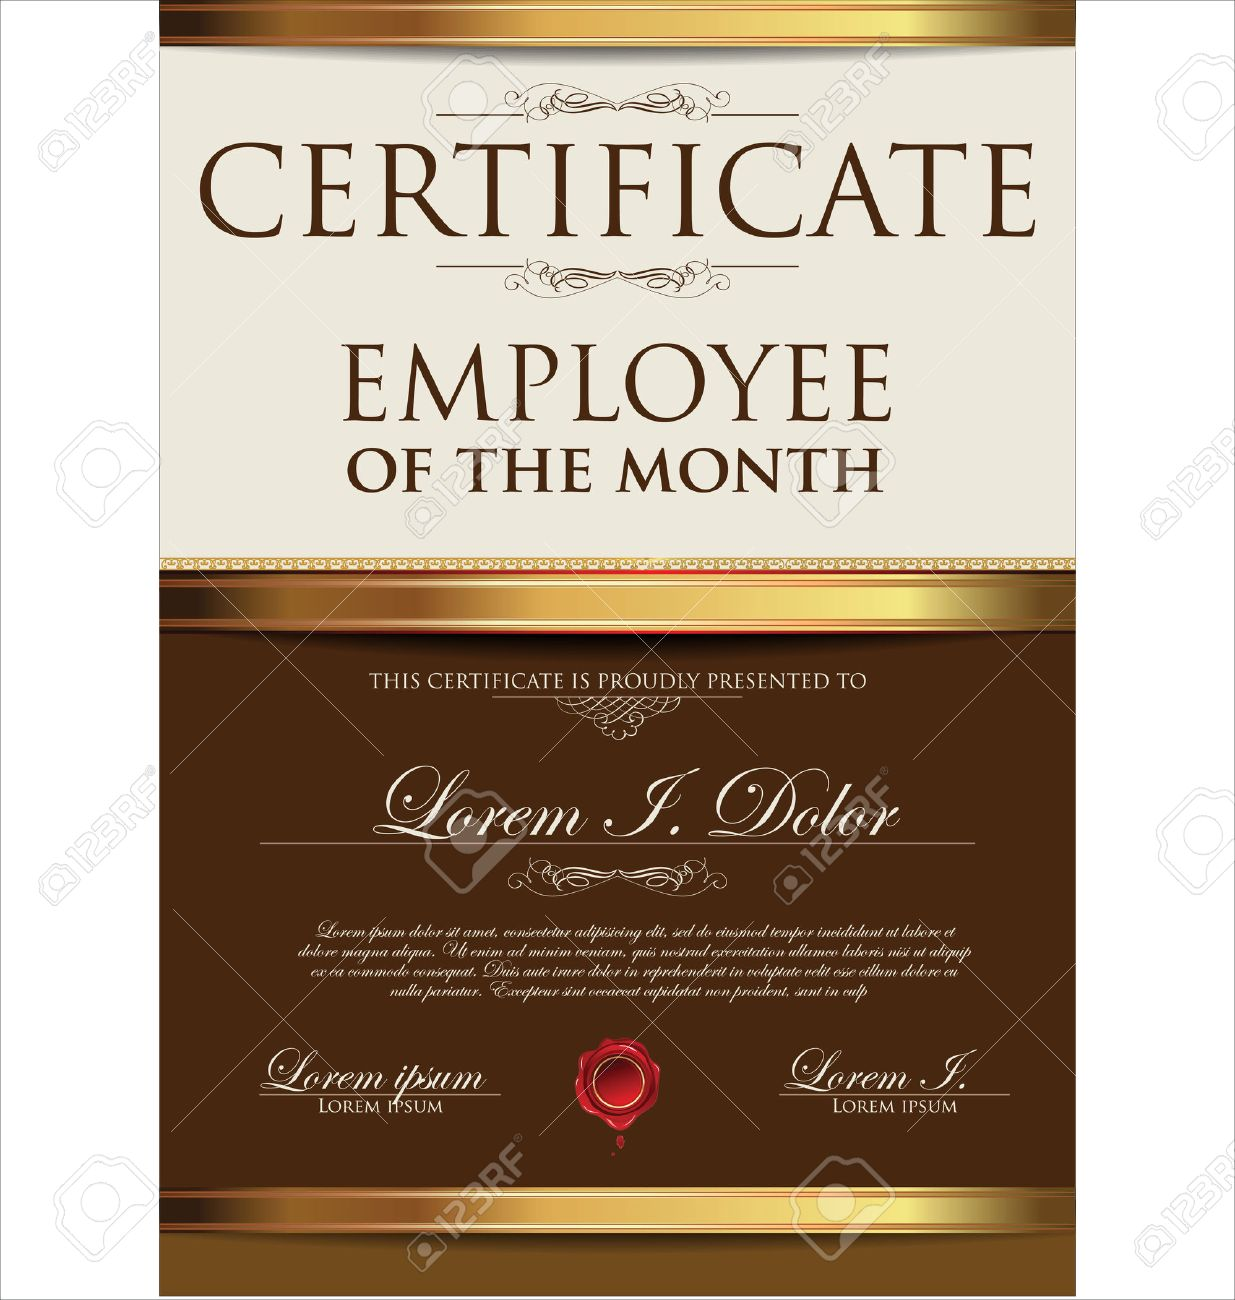 Certificate Template, Employee Of The Month Royalty Free Cliparts ...